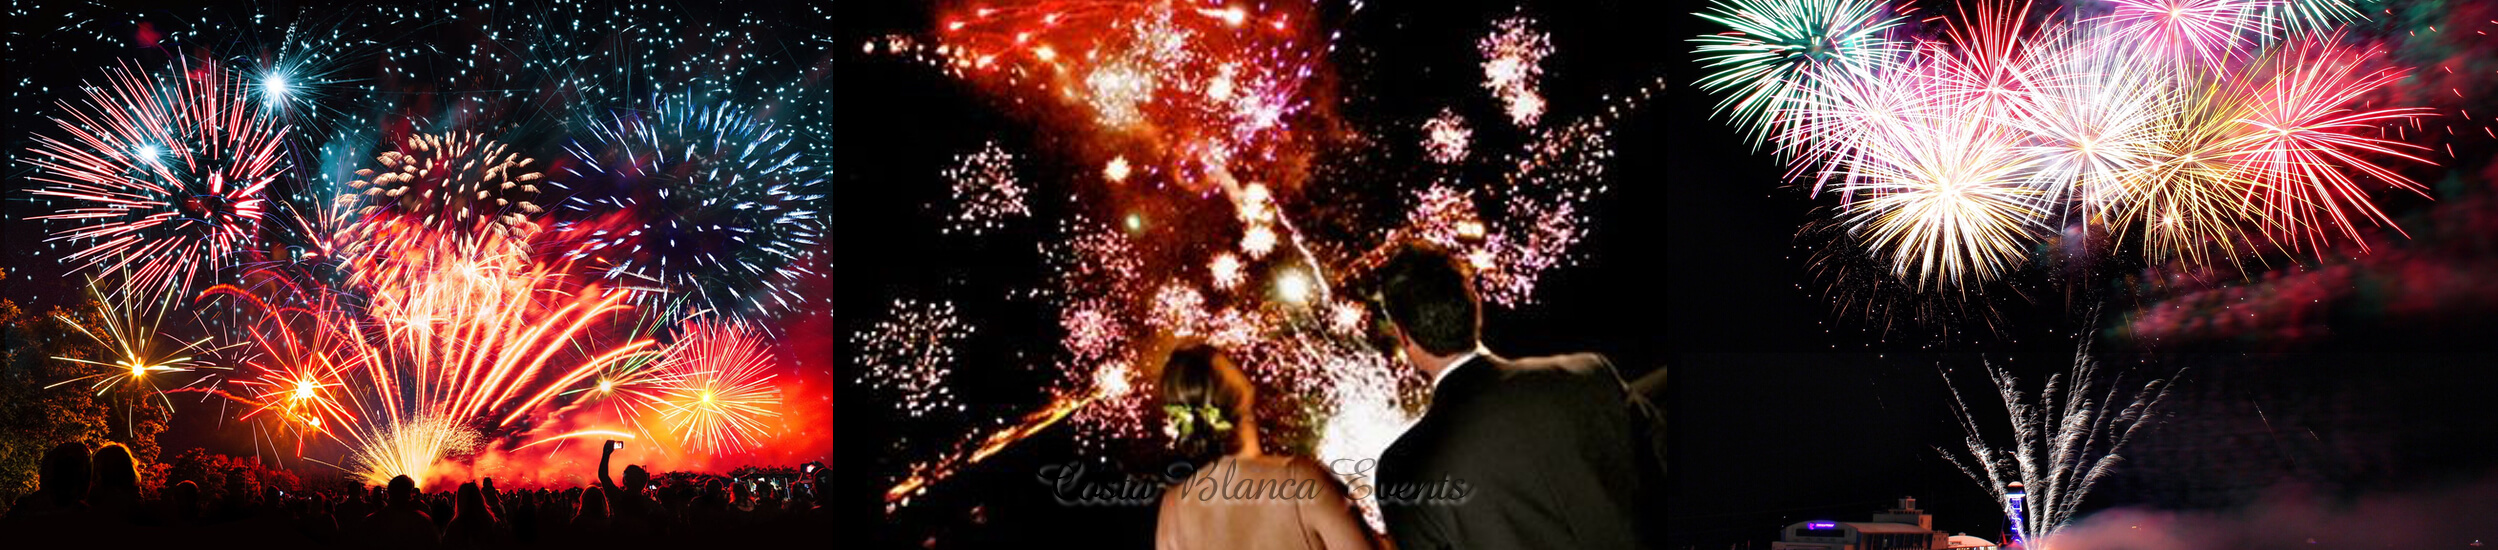 Fireworks during a wedding is truly unforgettable, but Spain has special safety rules